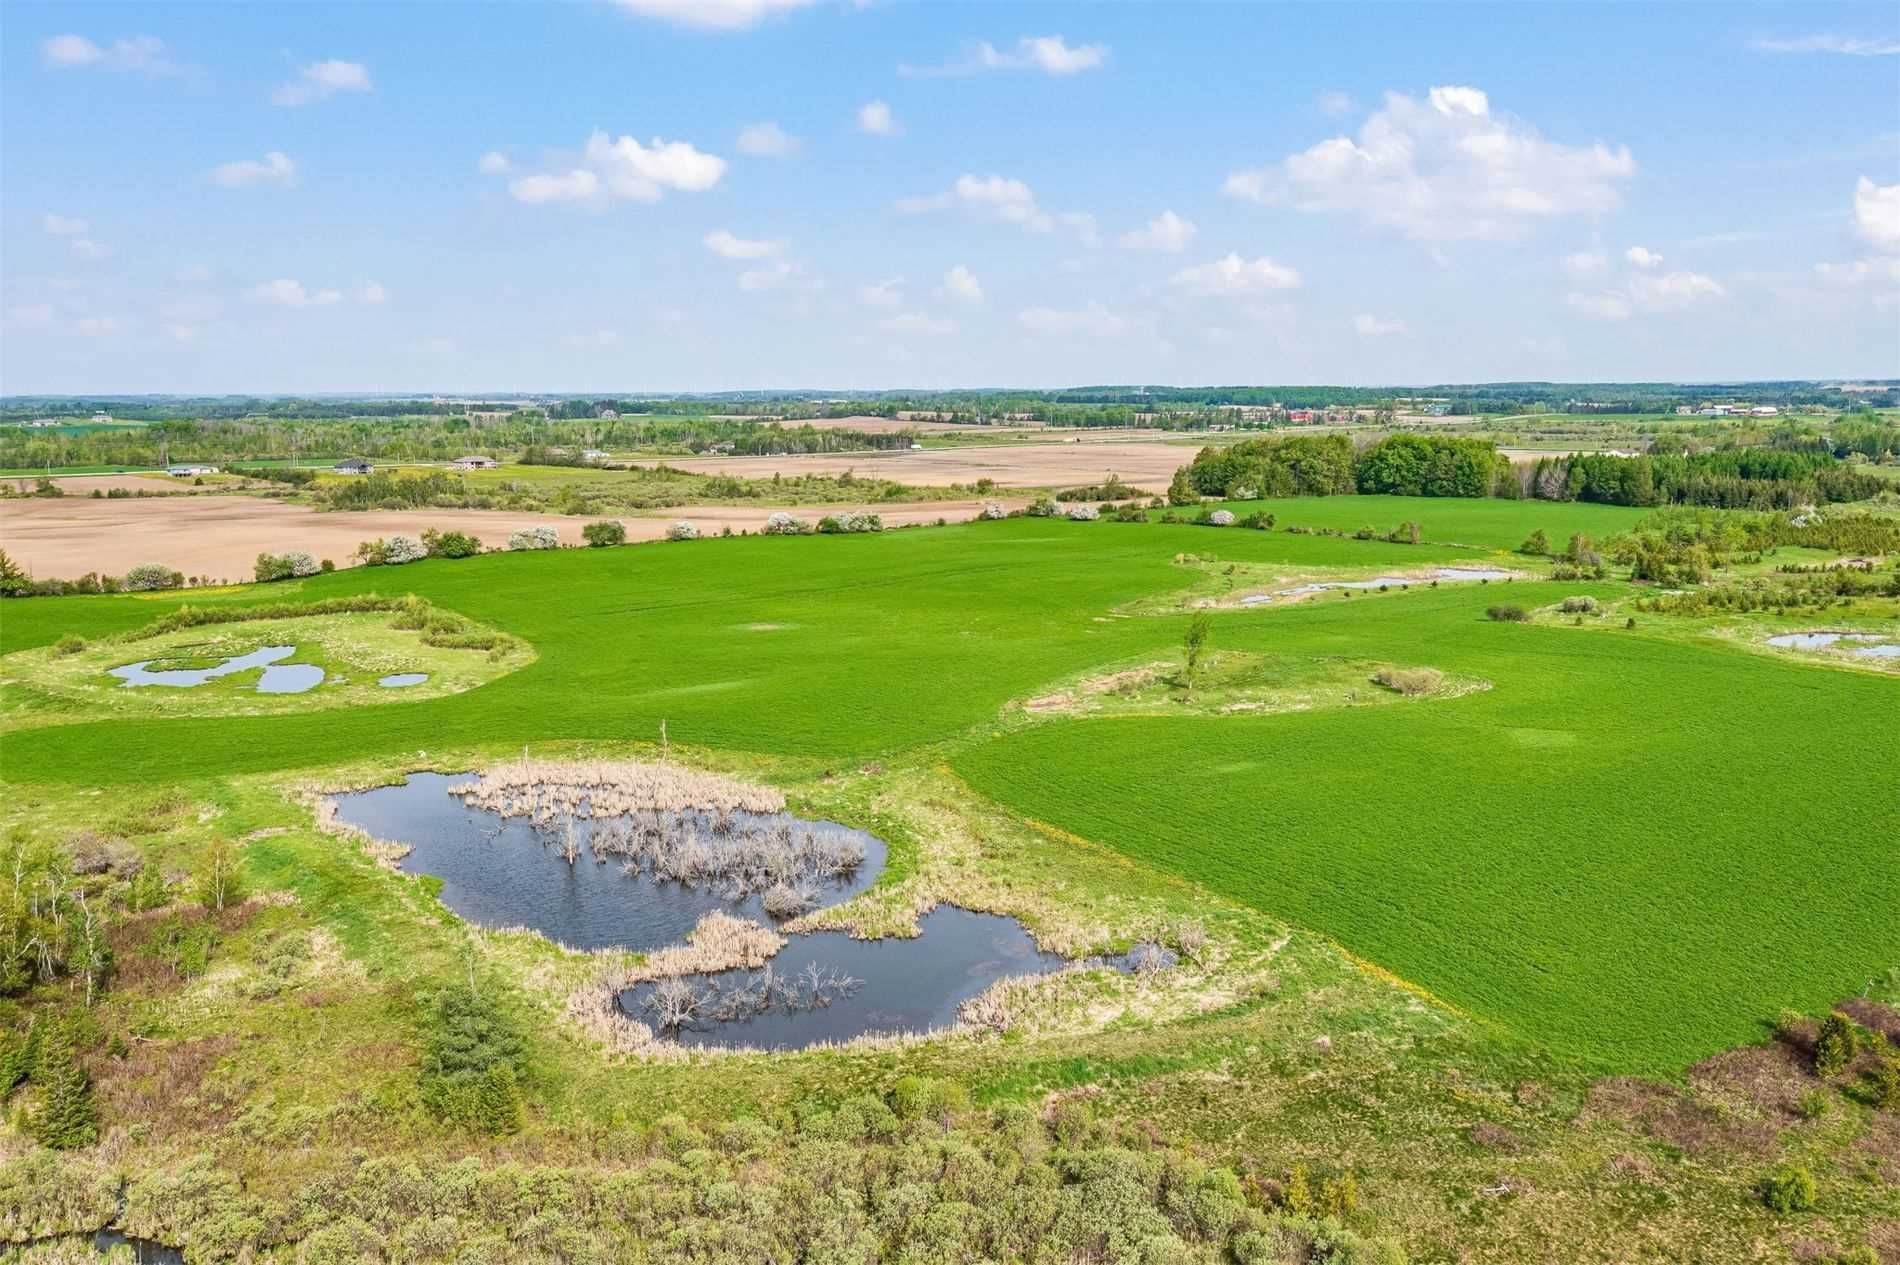 Main Photo: 514504 2nd Line in Amaranth: Rural Amaranth Property for sale : MLS®# X5163343